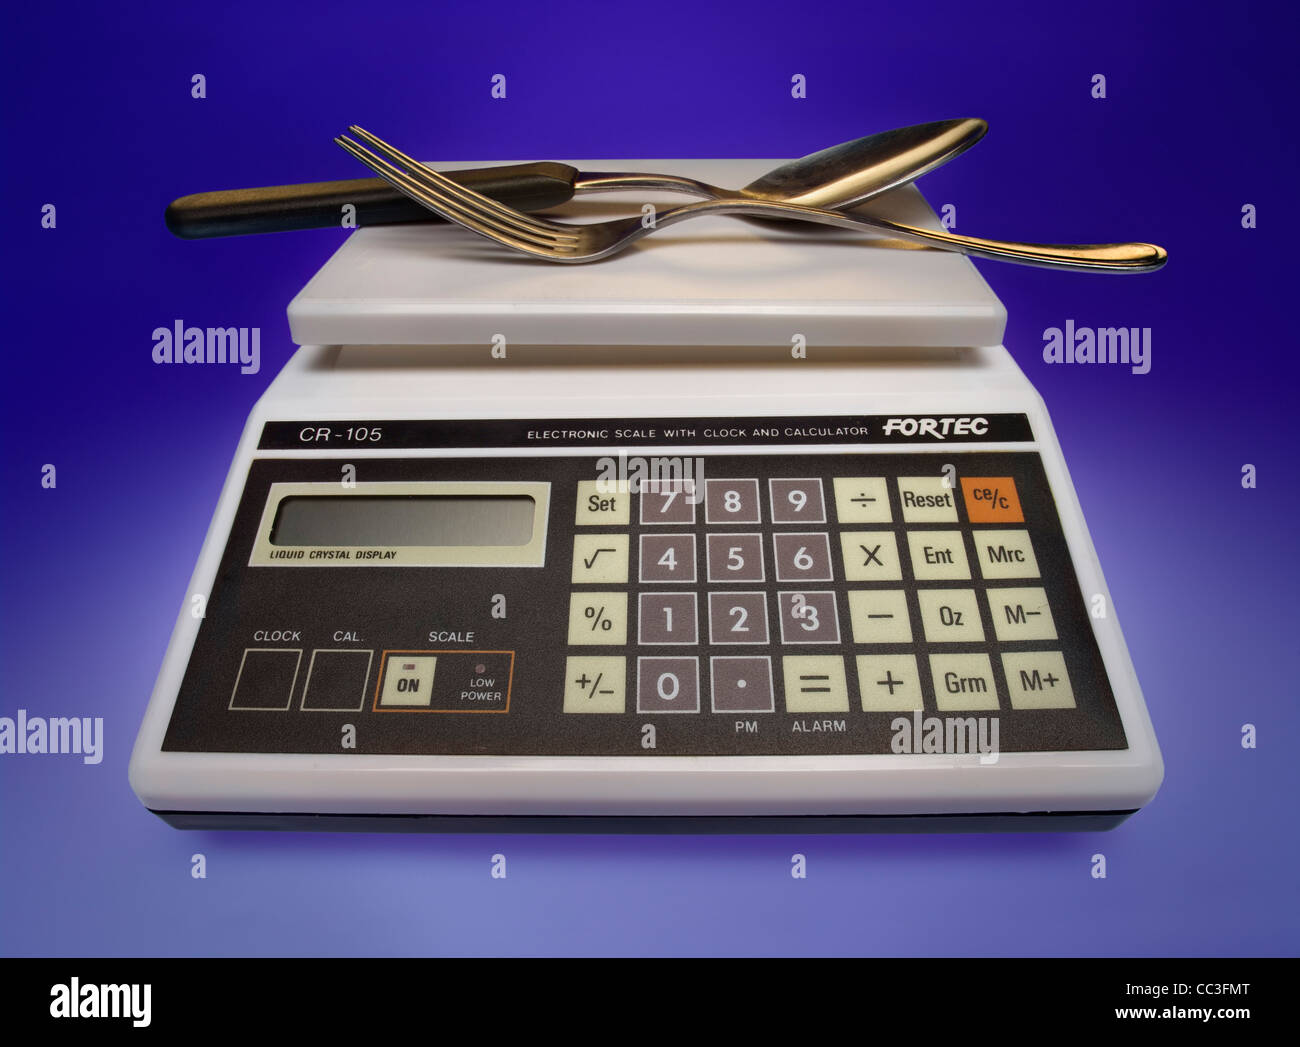 Retro electronic scale with clock and calculator - Stock Image